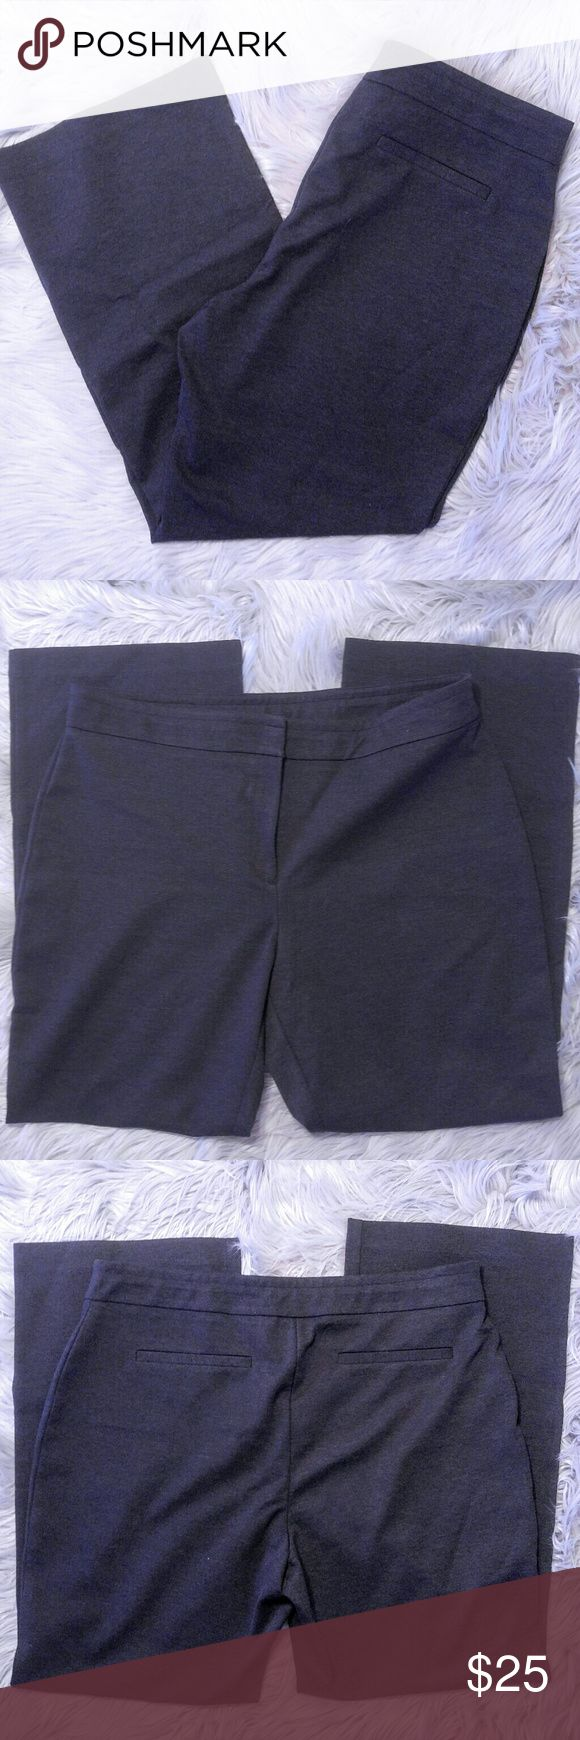 Chico's Gray Stretch Dress Pants Chico's Gray Stretch Dress Pants Excellent condition just dry cleaned size 3 in Chico's. Chico's Pants Boot Cut & Flare